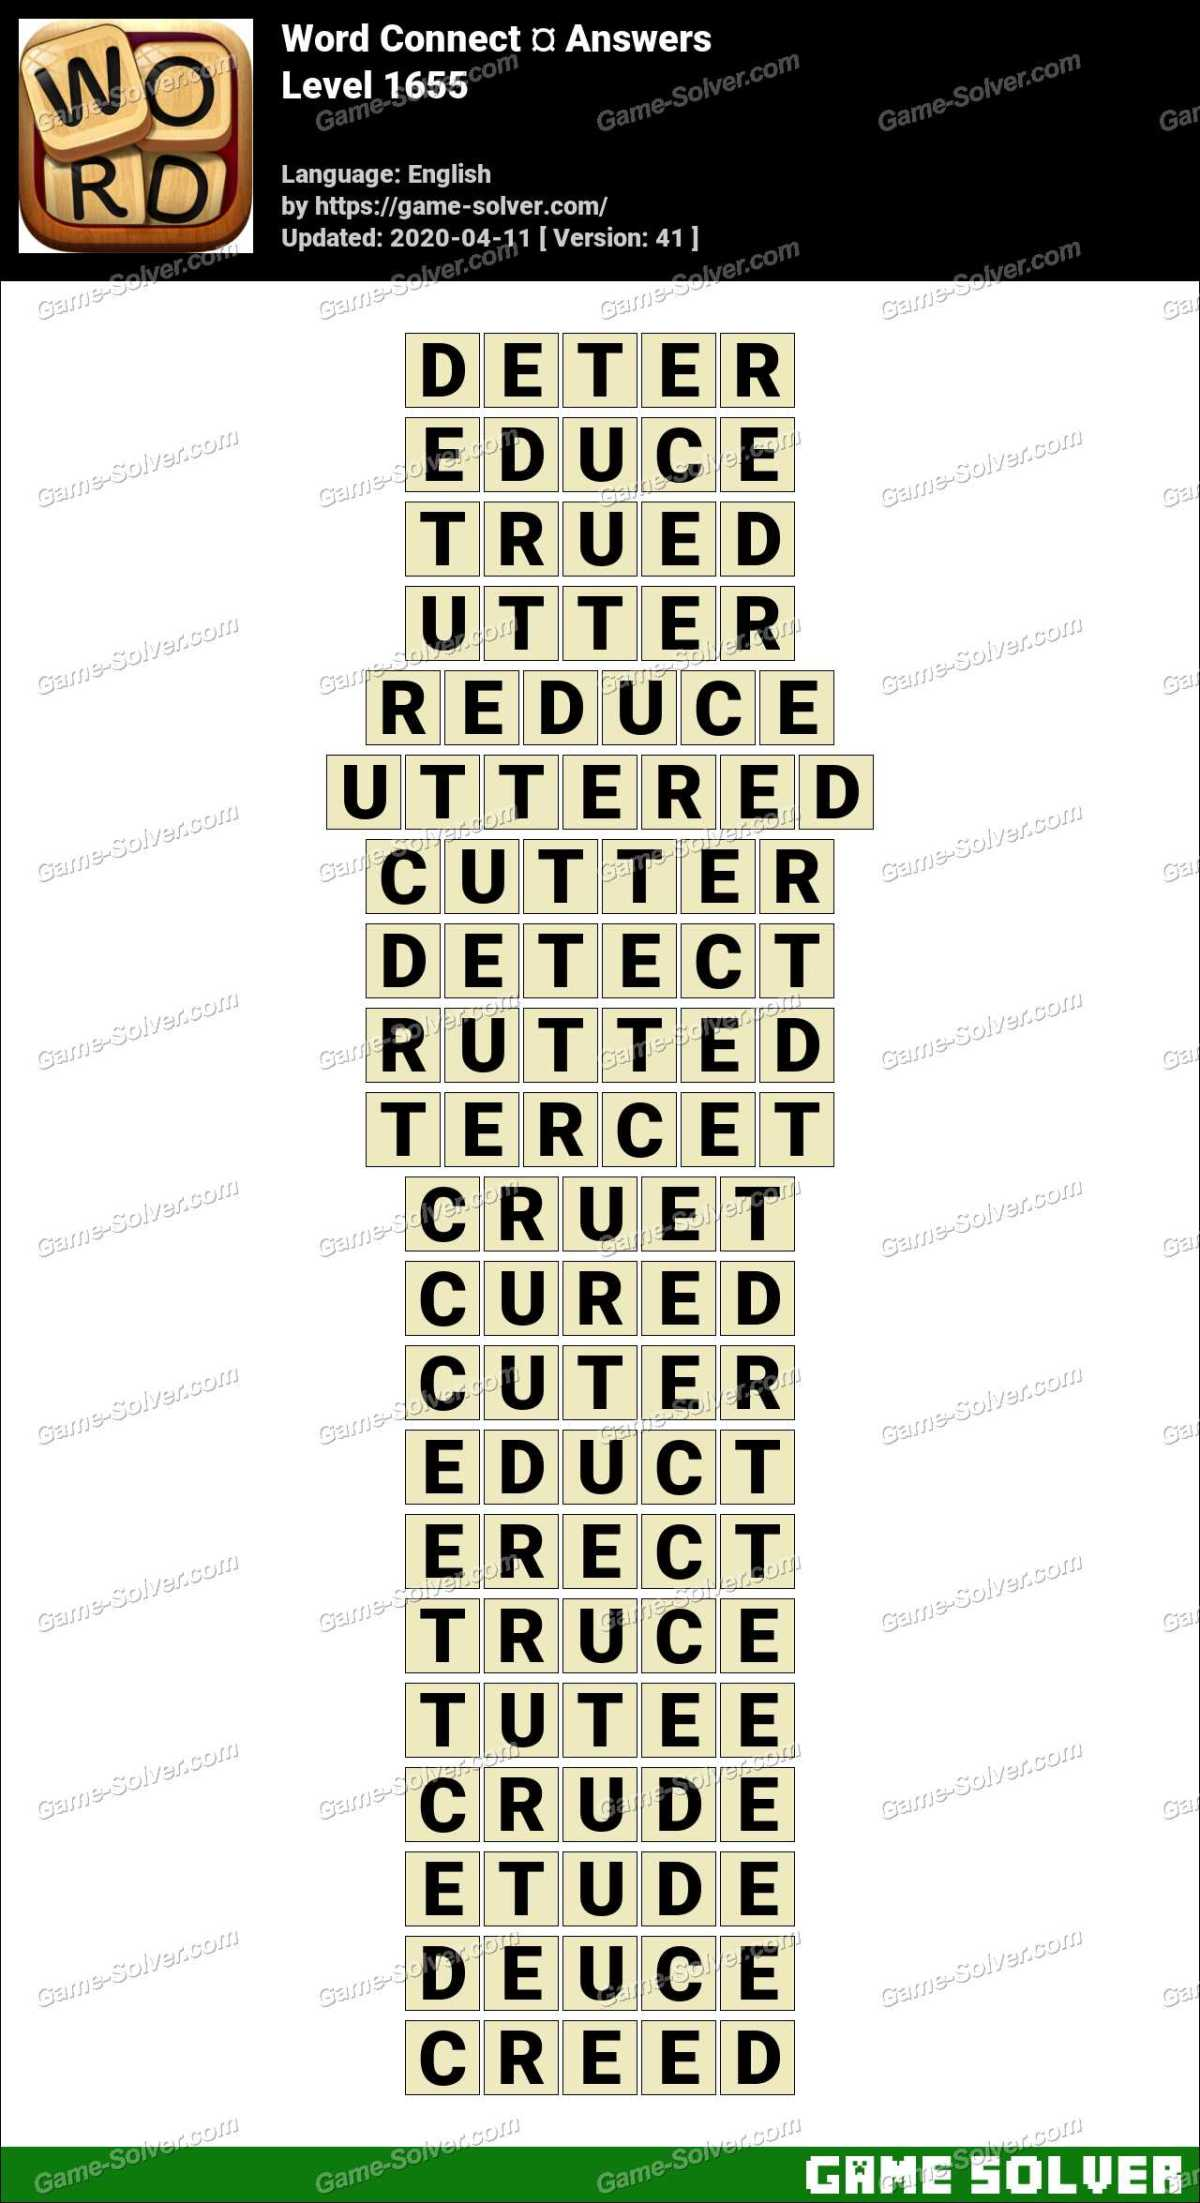 Word Connect Level 1655 Answers